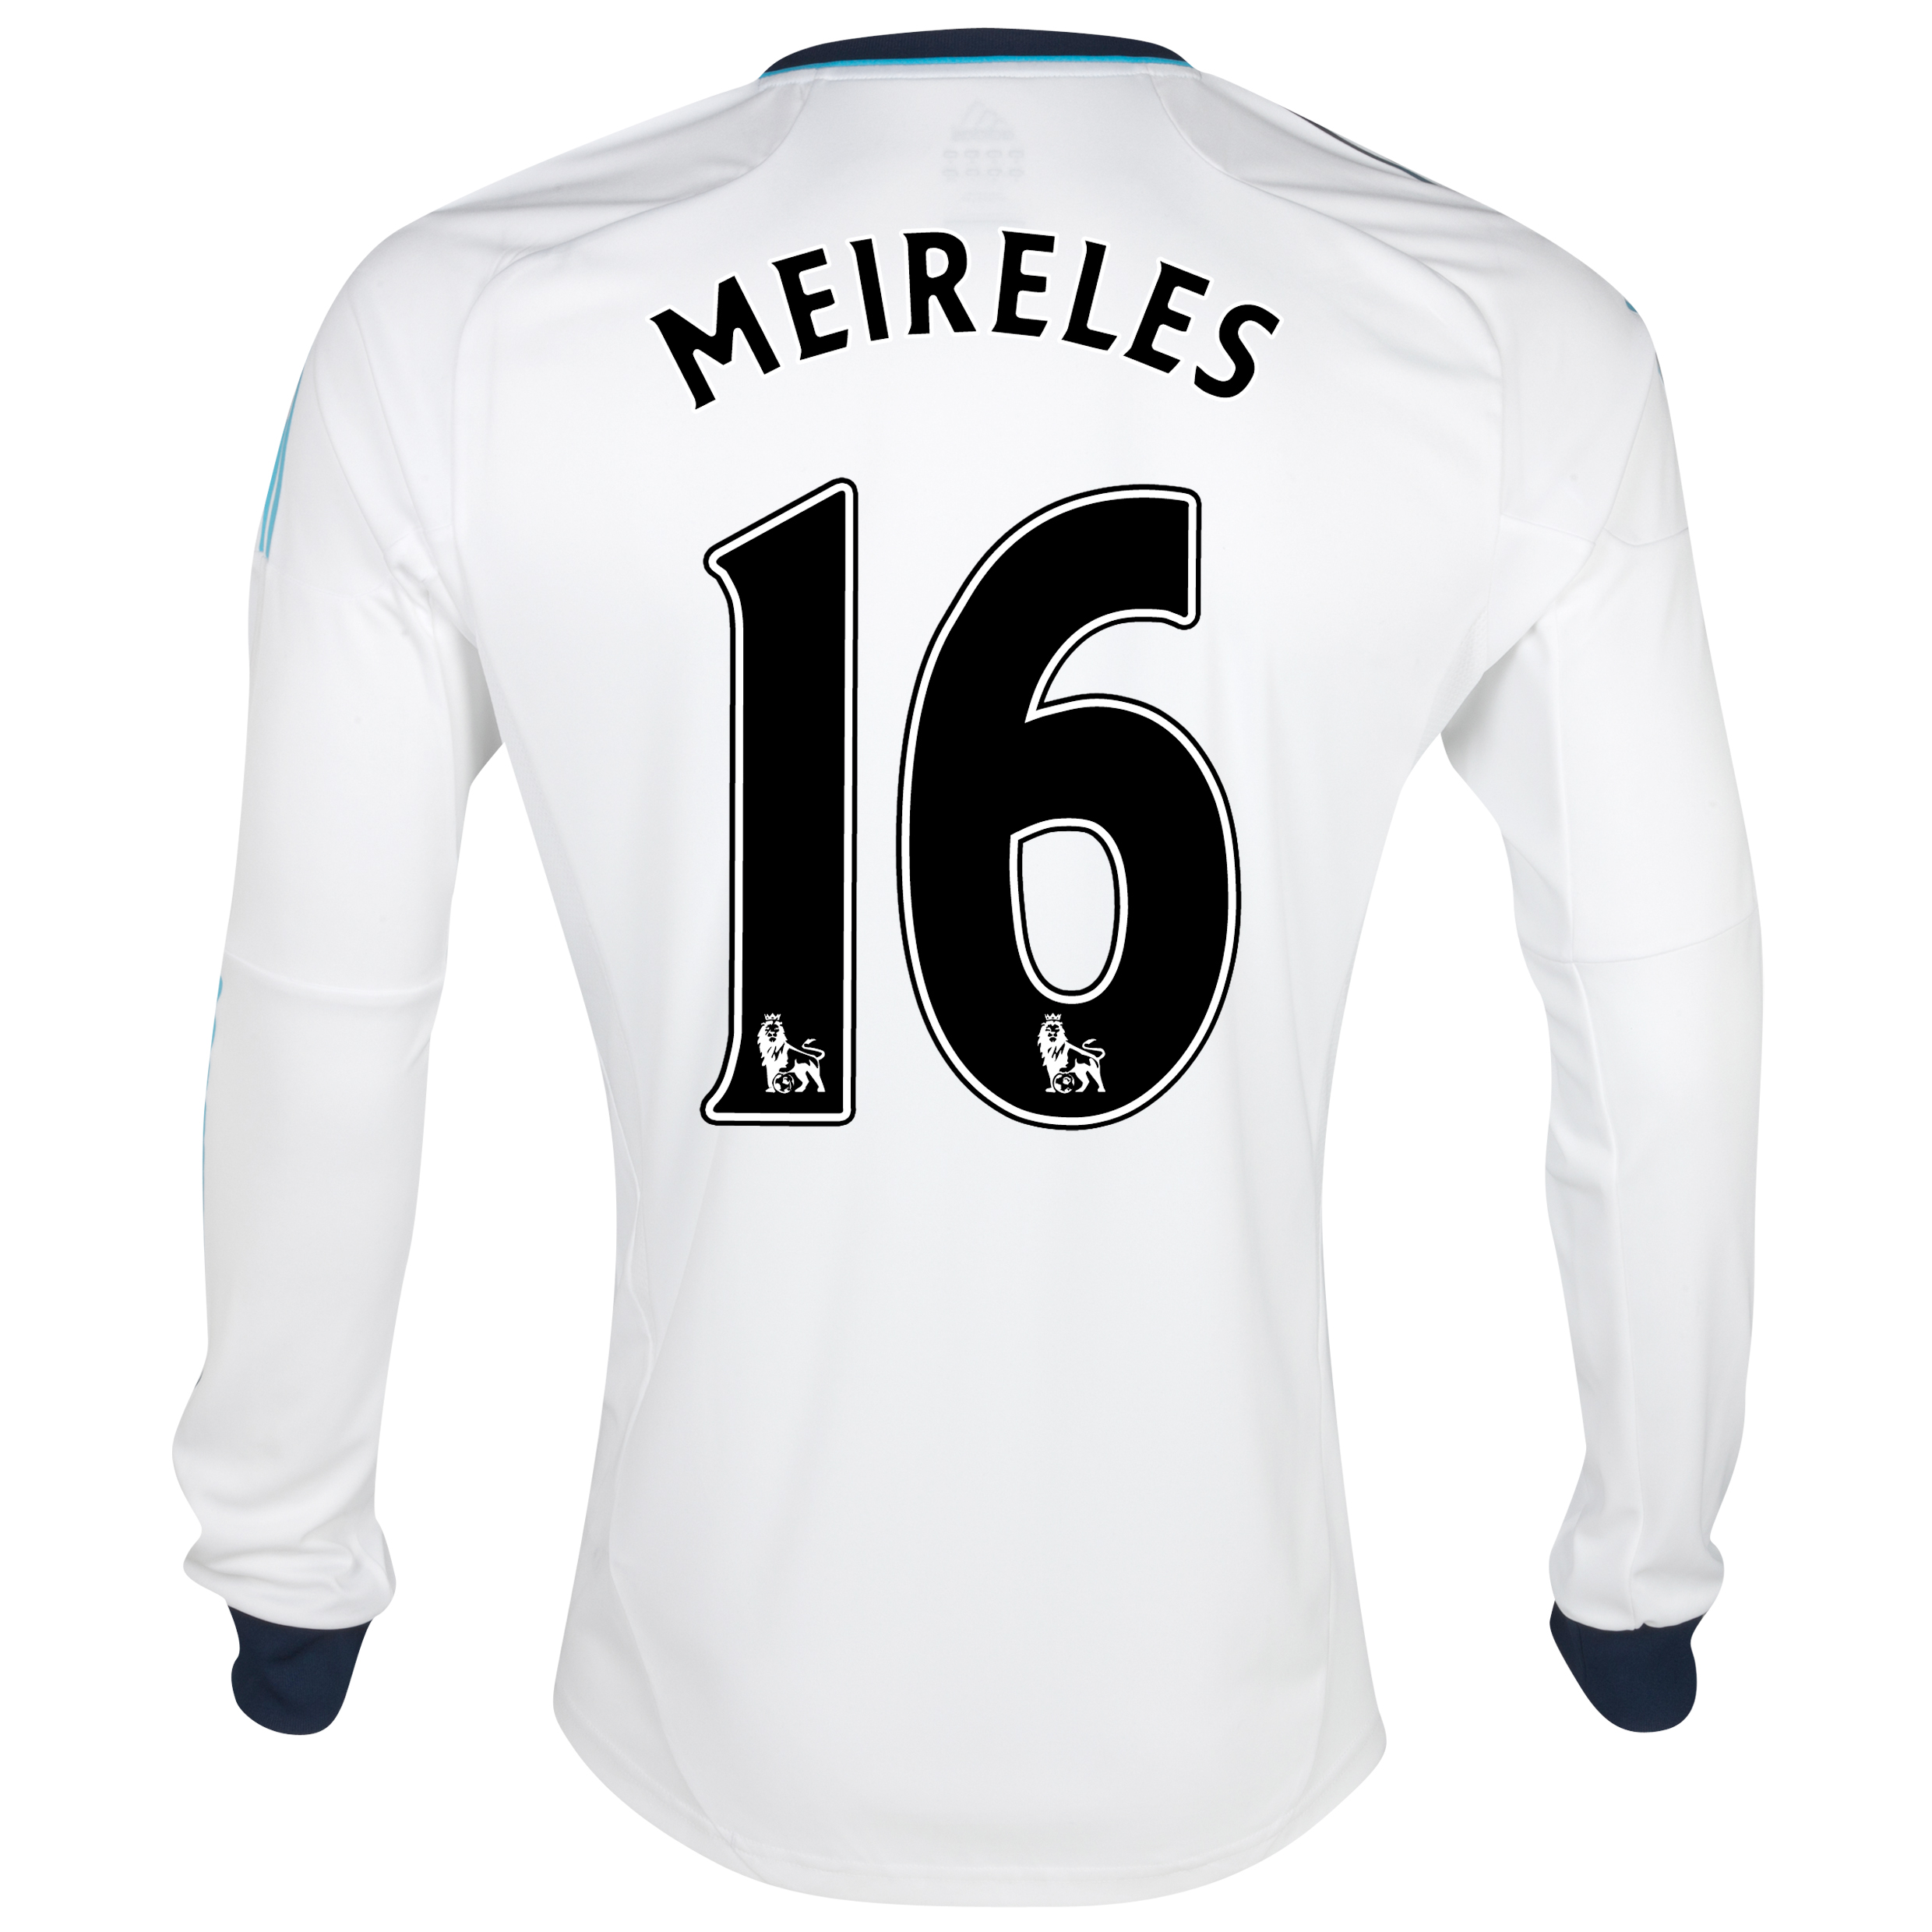 Chelsea Away Shirt 2012/13 - Long Sleeved  - Youths with Meireles 16 printing